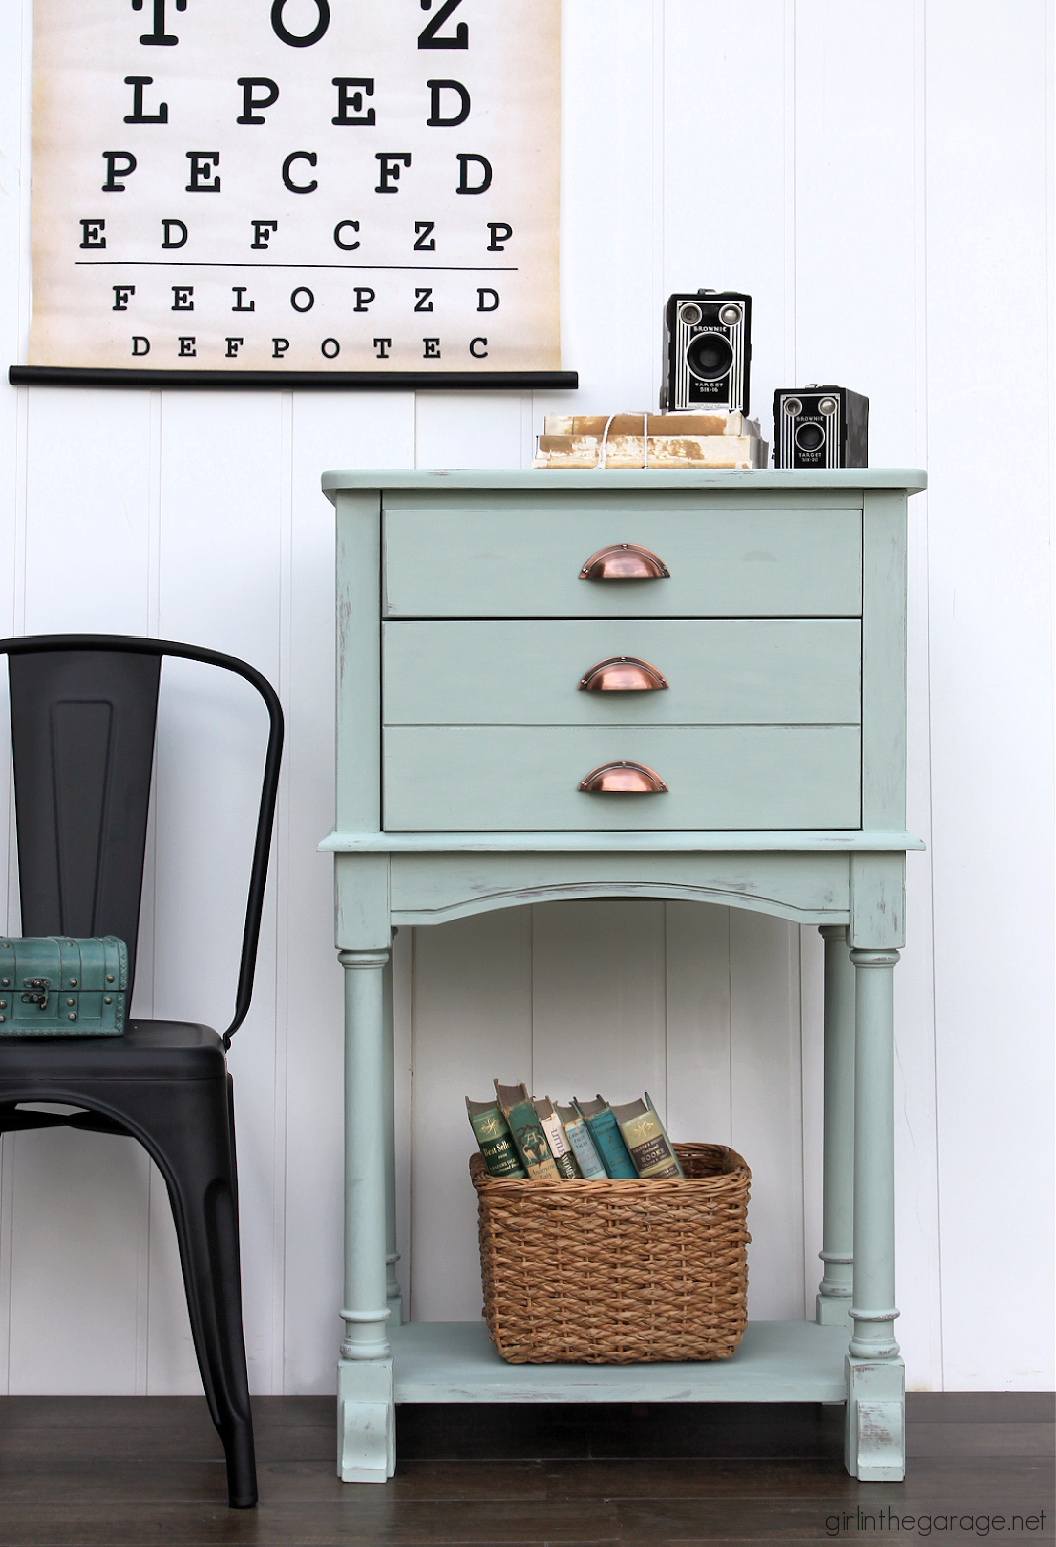 An honest review of Rustoleum Chalked Paint, from someone who loves Annie Sloan Chalk Paint! By Girl in the Garage